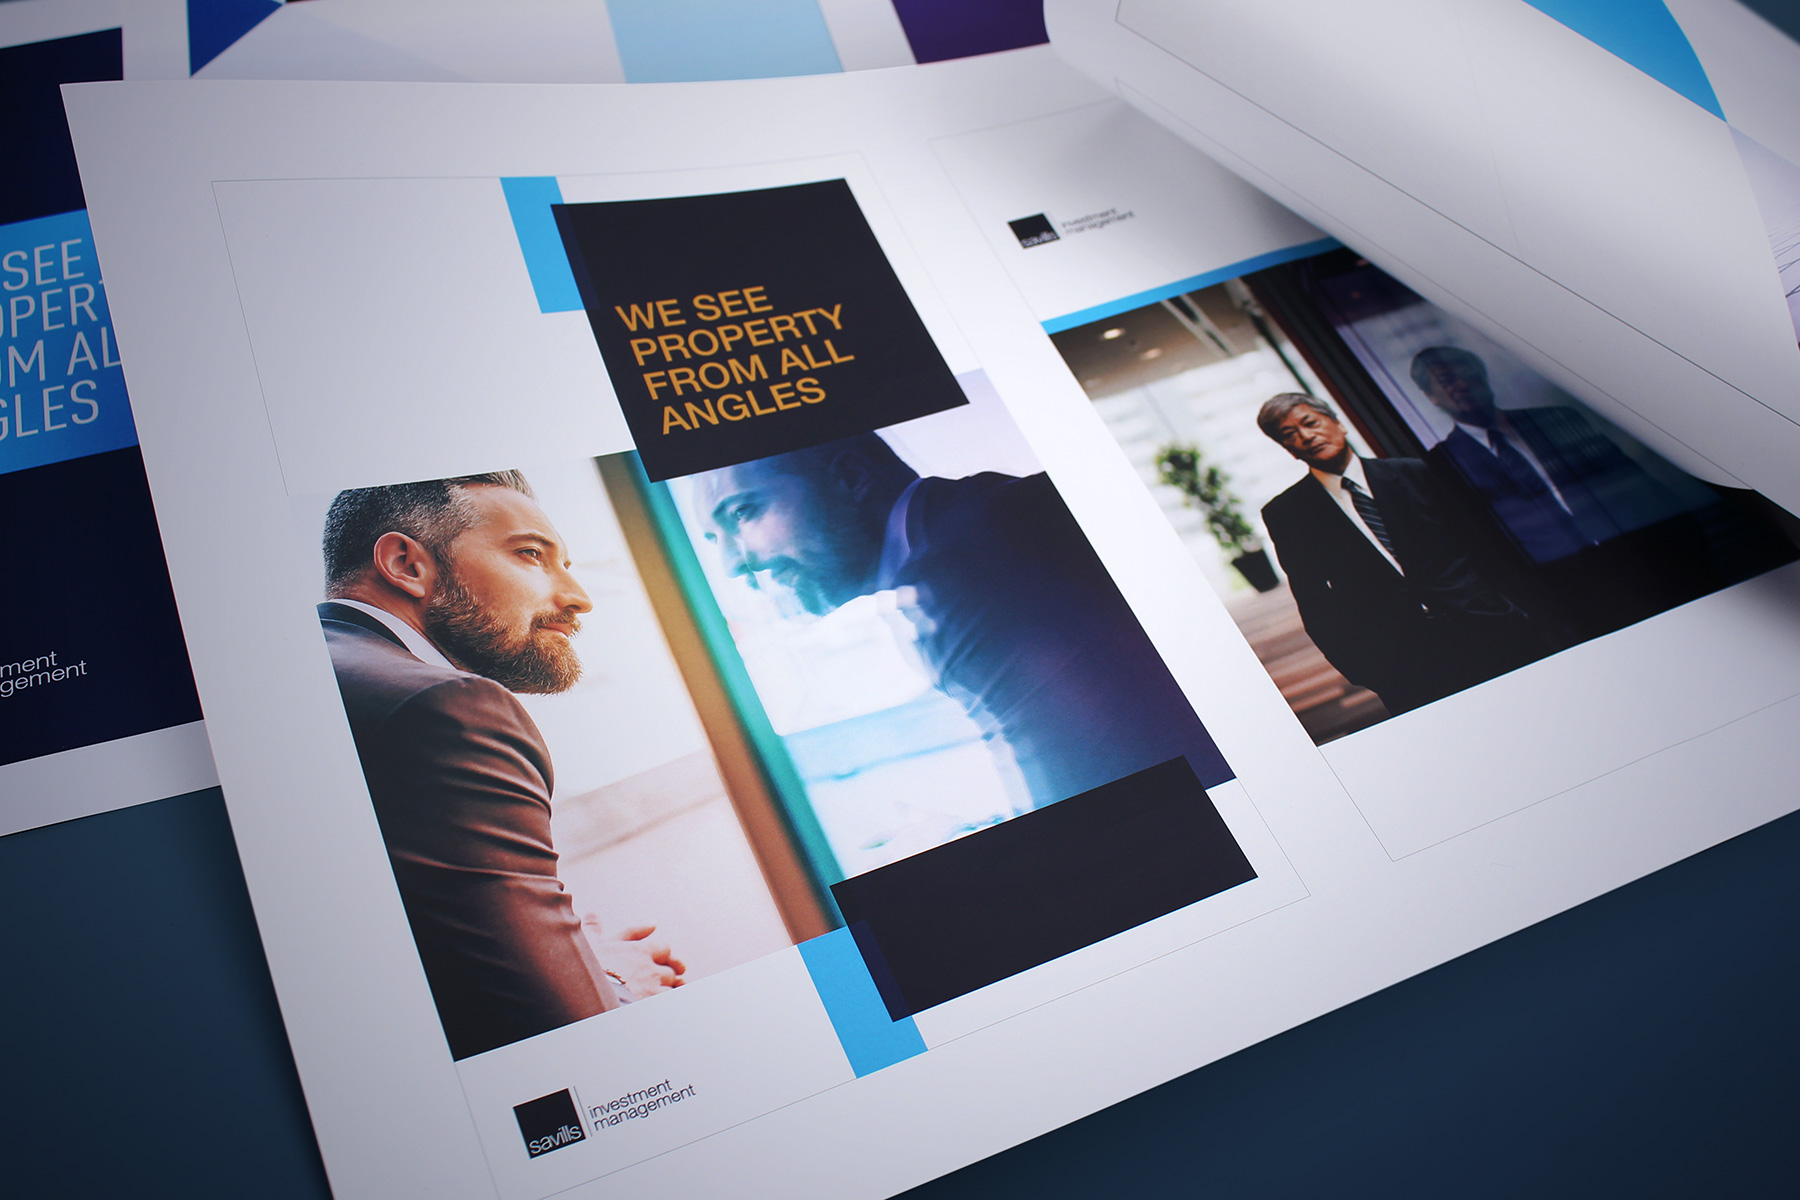 Our concept utilised an established brand icon, the square; combined with positioning statement and a unique image treatment.